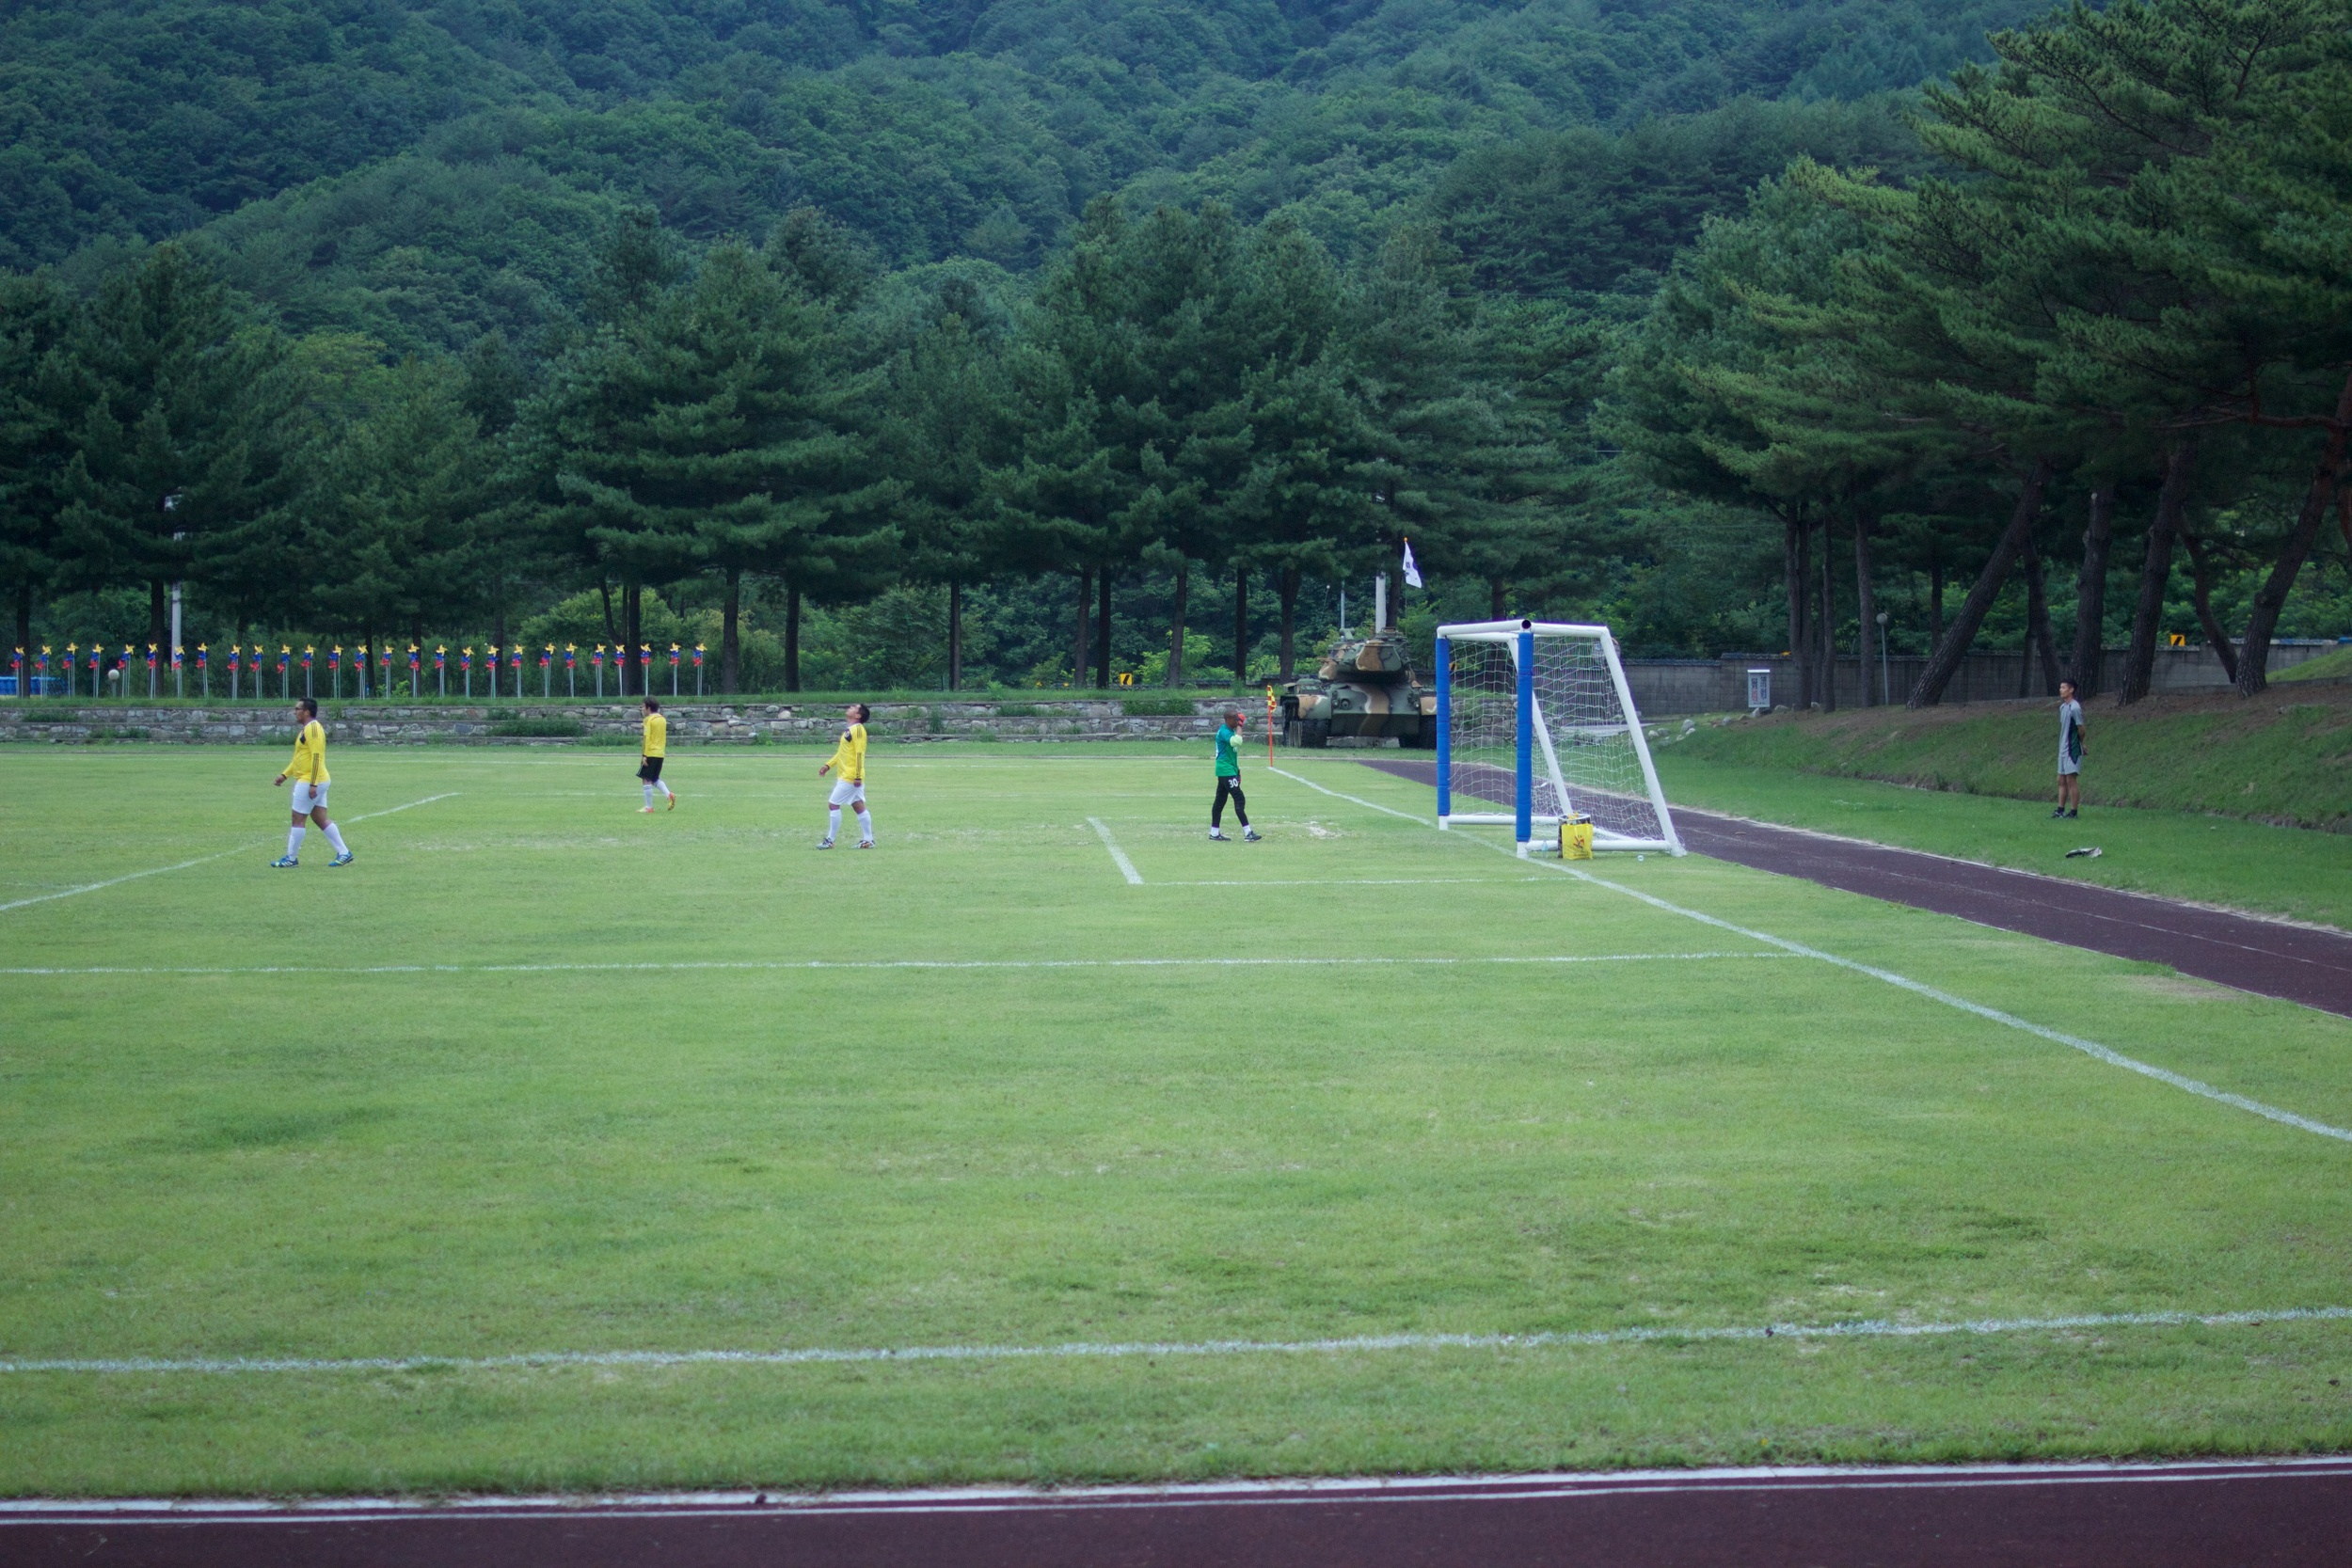 Game at the DMZ 4.jpg